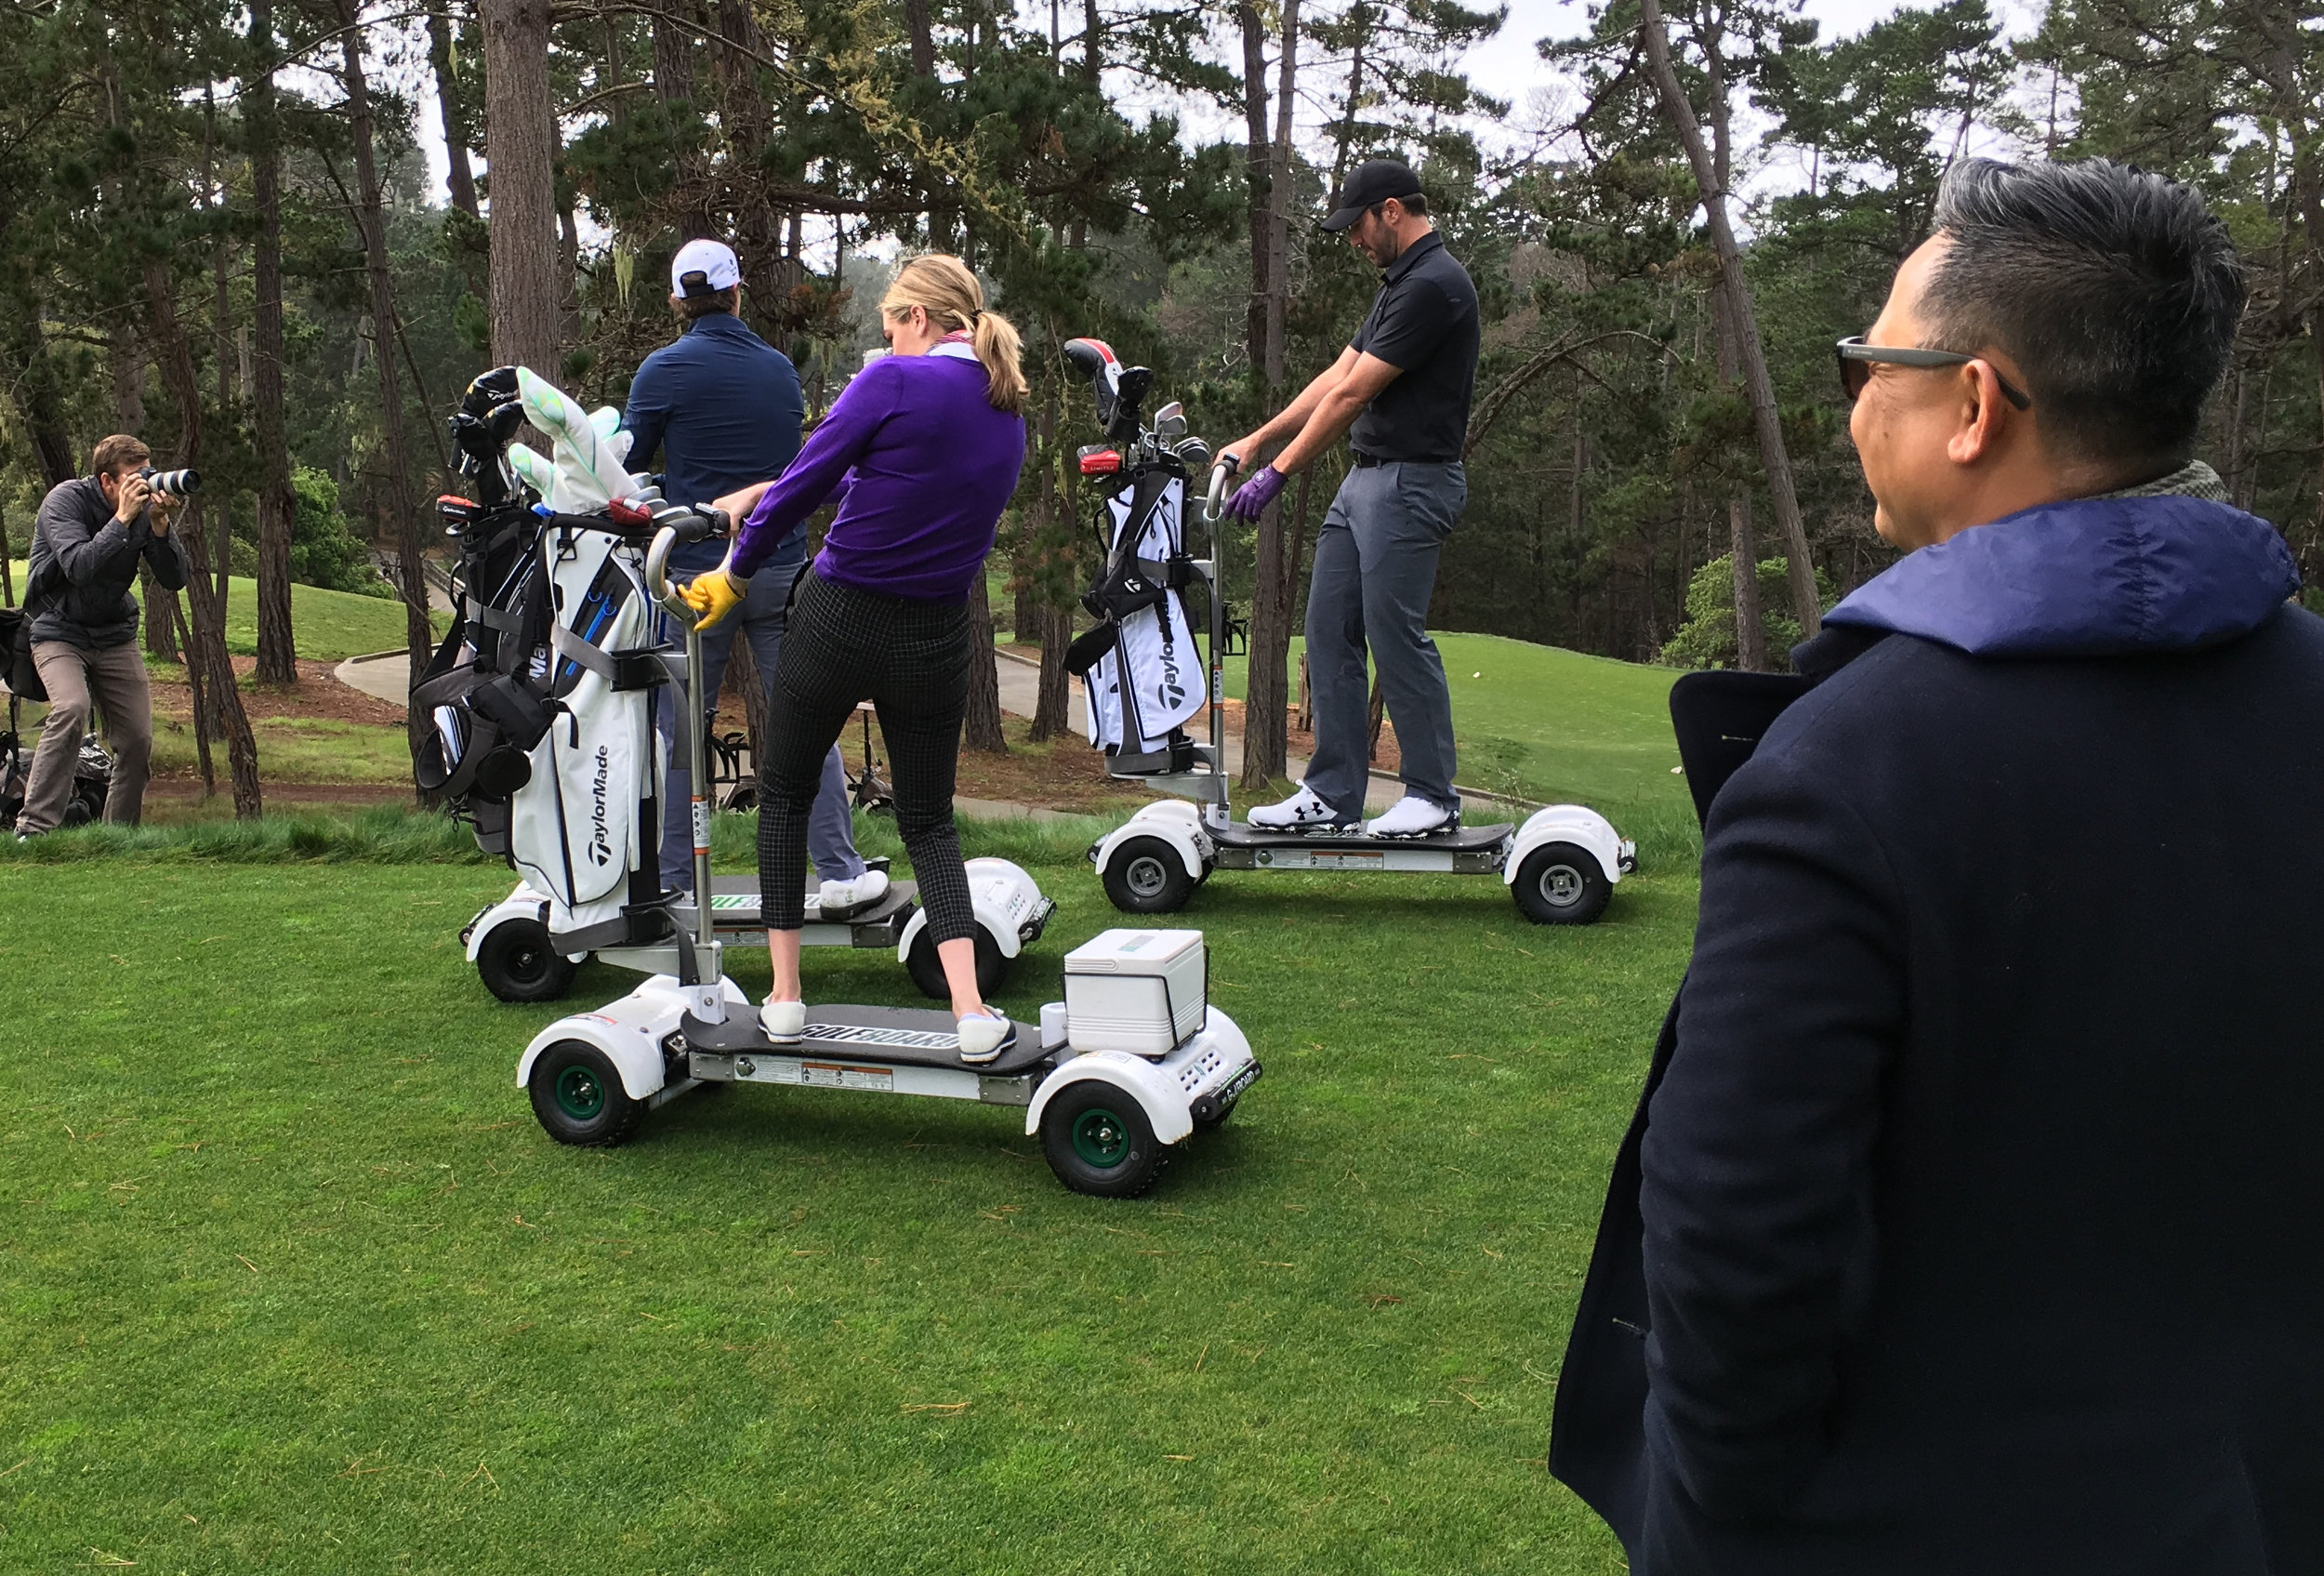 Luan Pham (foreground) looks on as Supermodel Kate Upton, Tigers pitching ace Justin Verlander, and Poppy Hills Director of Performance Jeff Ritter pose for the camera on their GolfBoards.